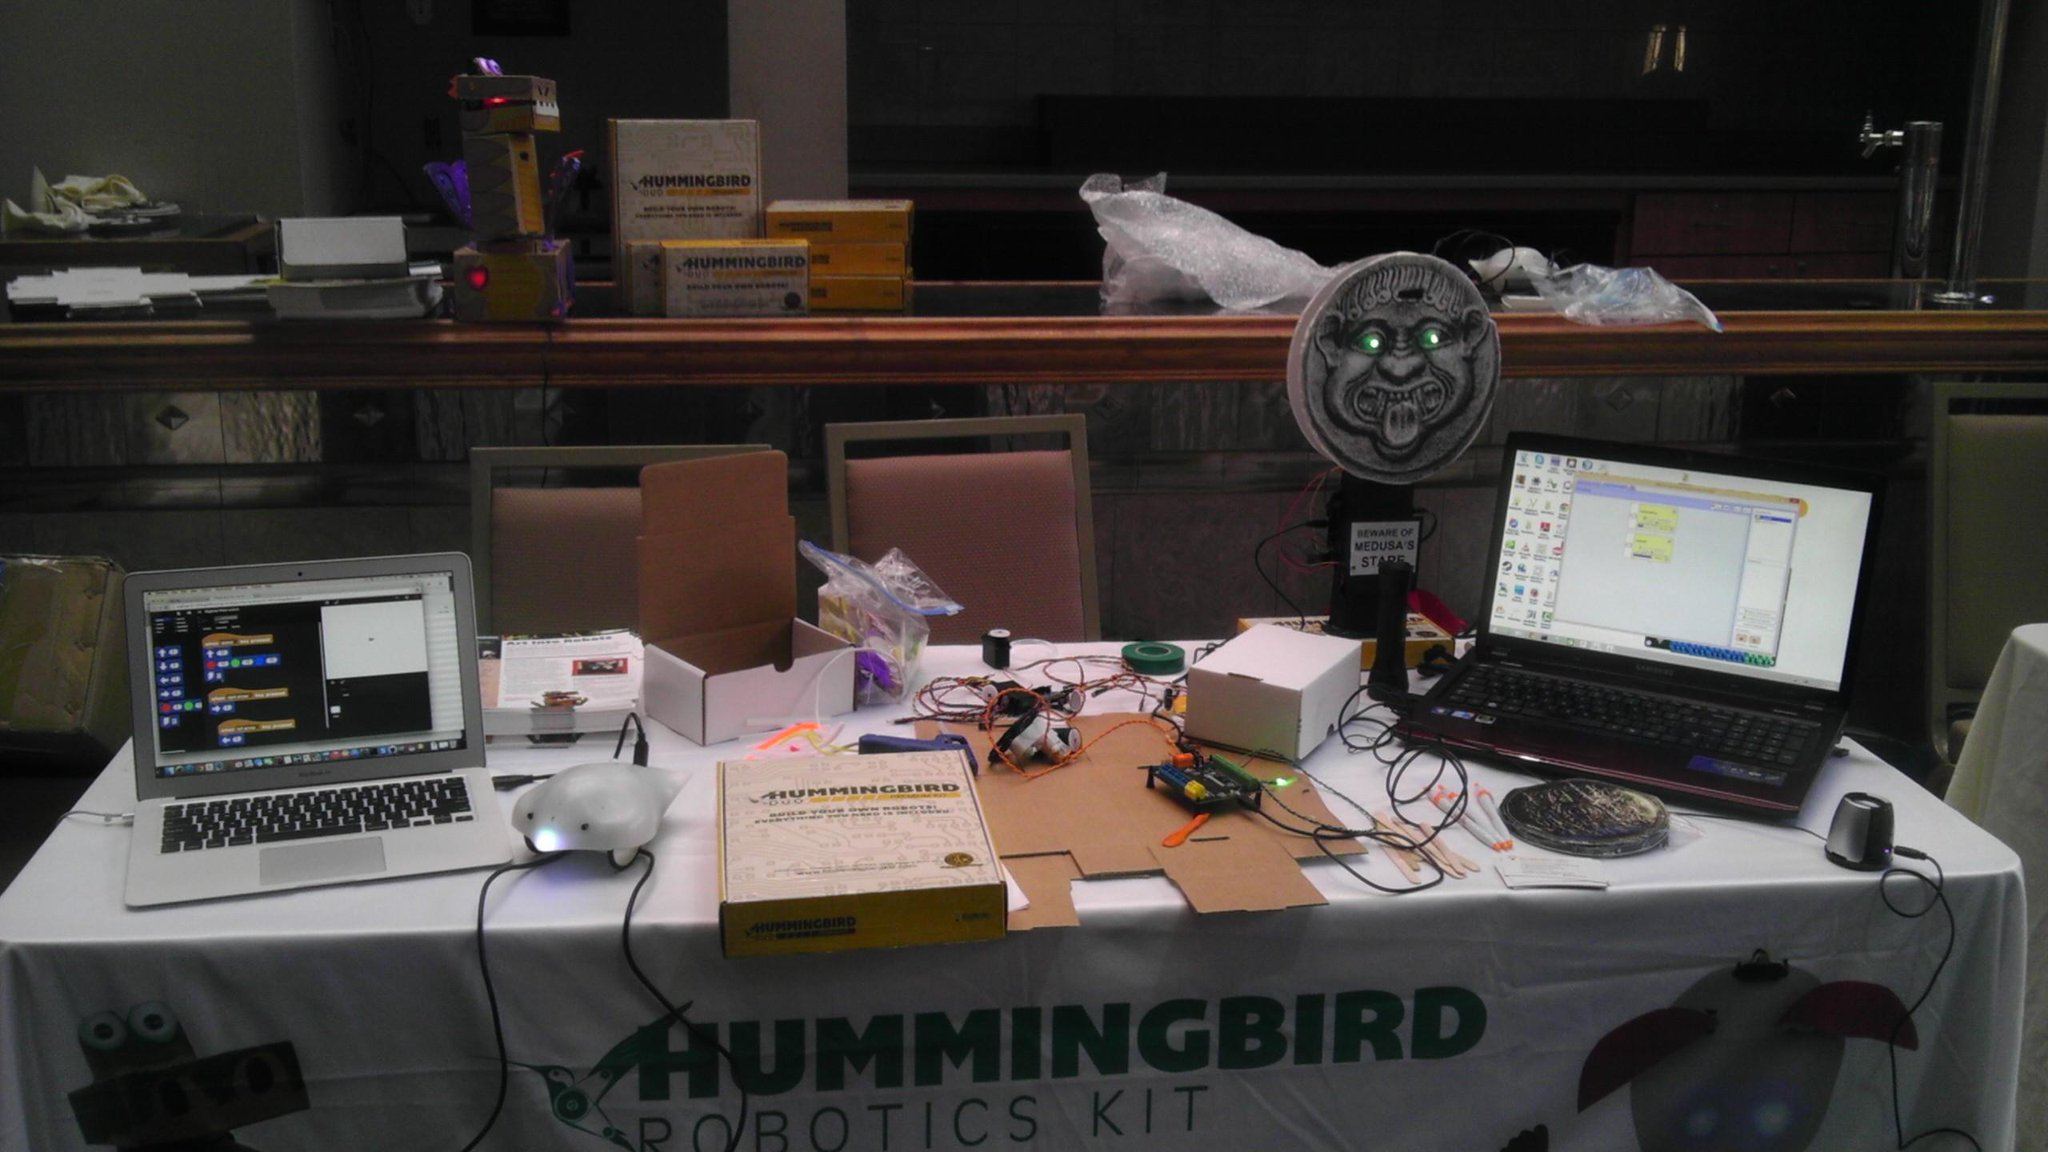 RT @birdbraintech: We're at #TRETC2014 showing off the Hummingbird Duo, having fun in the makerspace. http://t.co/3Hqo8tatLL